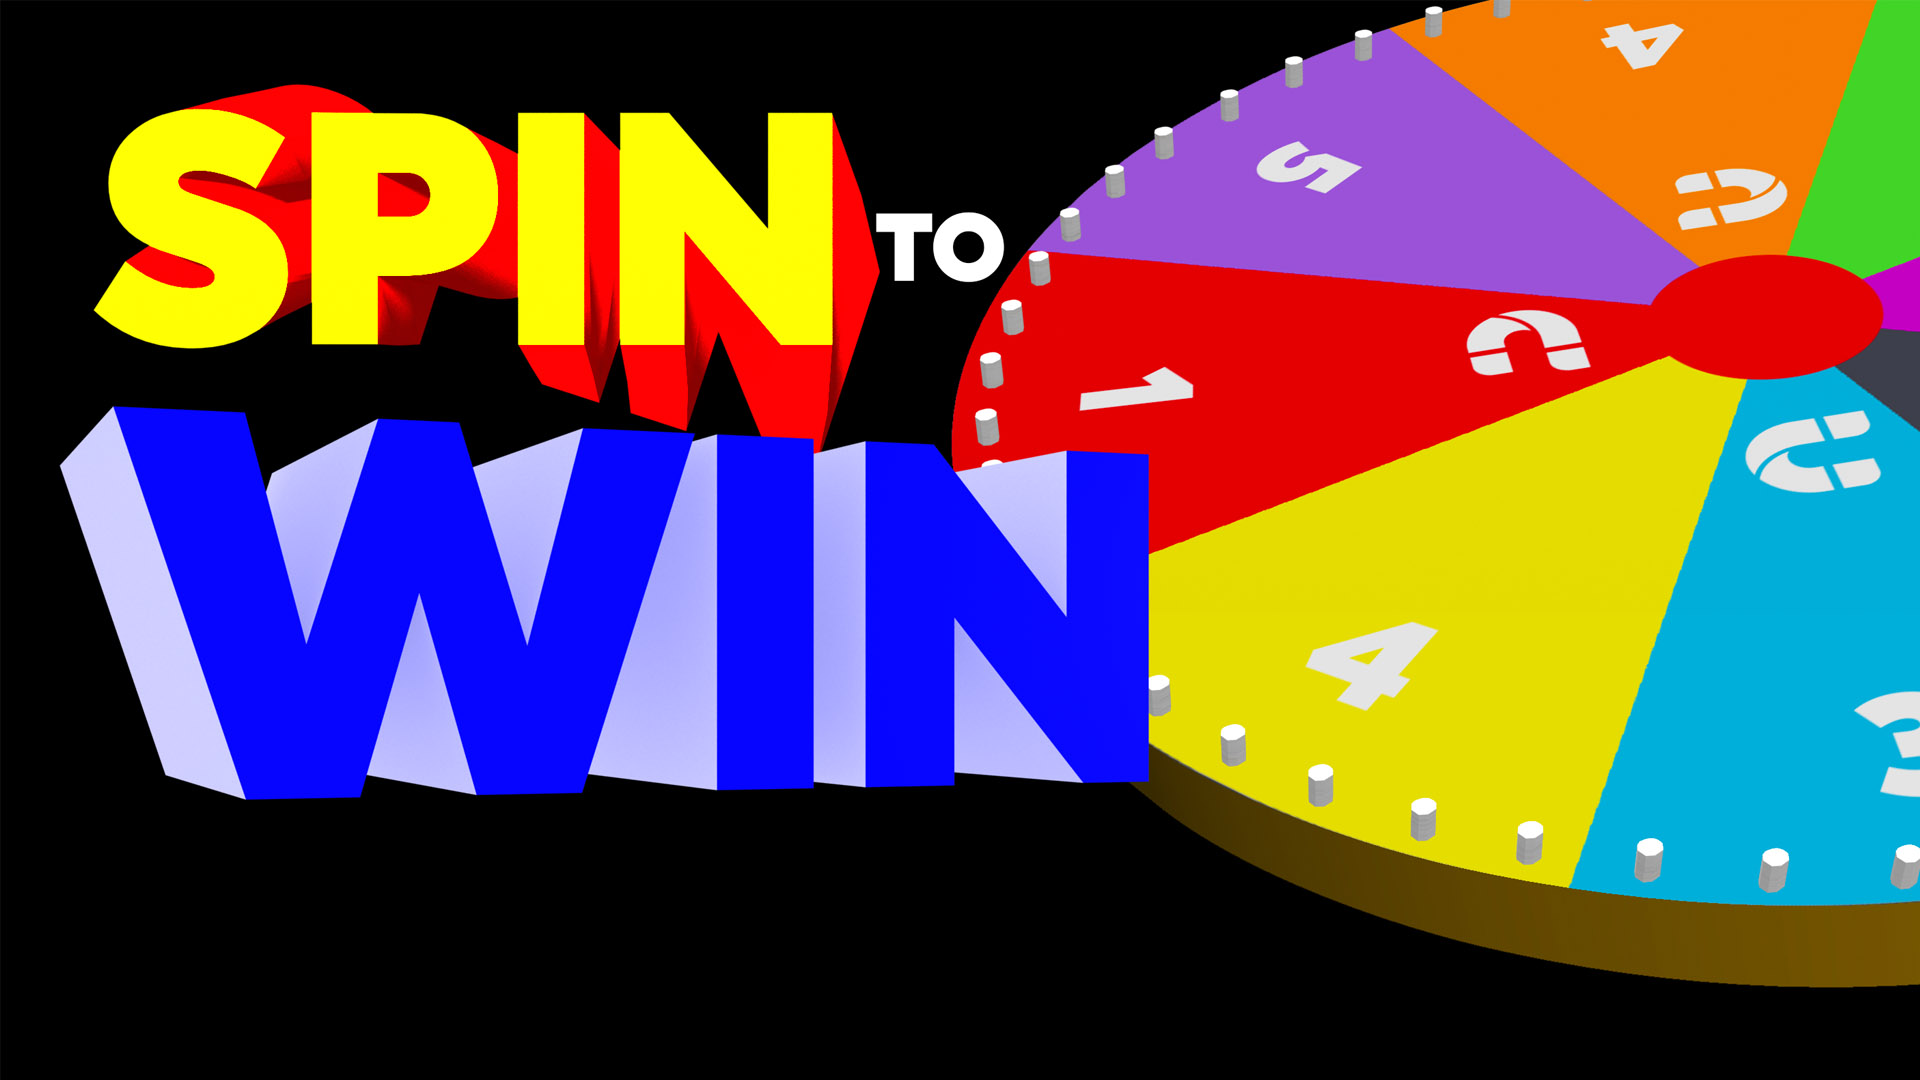 Trade Show Event Activation Spin to Win